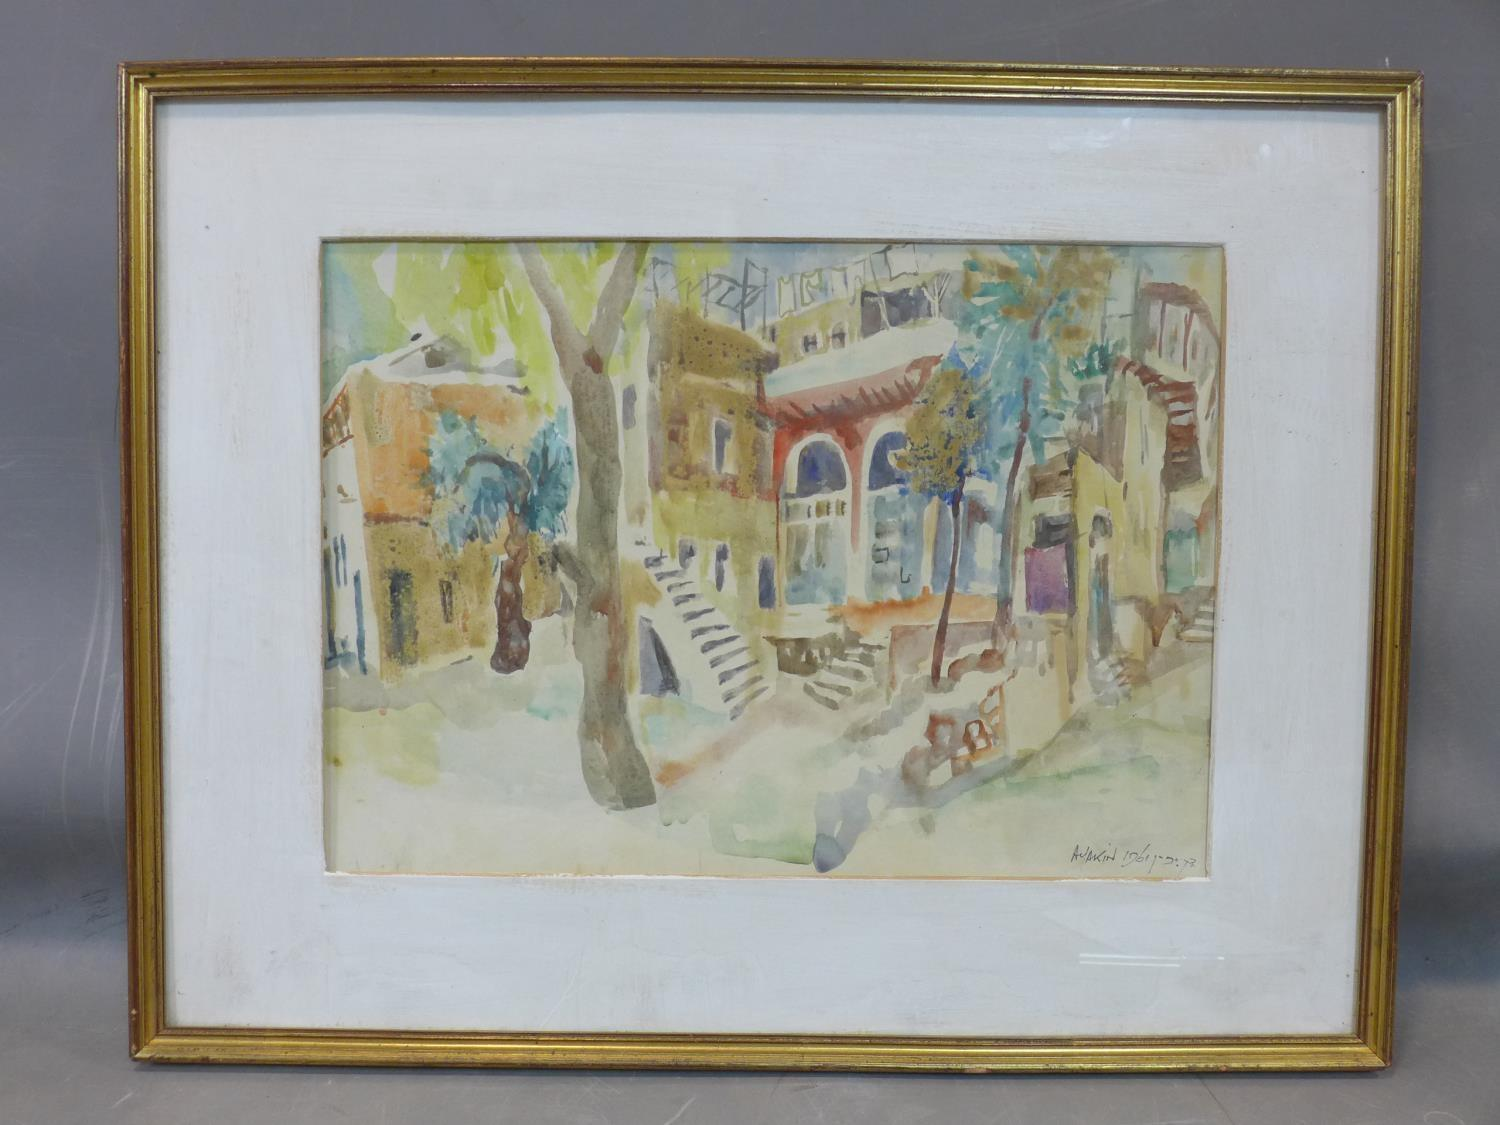 Lot 315 - Abraham Yakin (1924 -), View of Jerusalem, watercolour, signed and dated 'A Yakin 1961', 53 x 68 cm